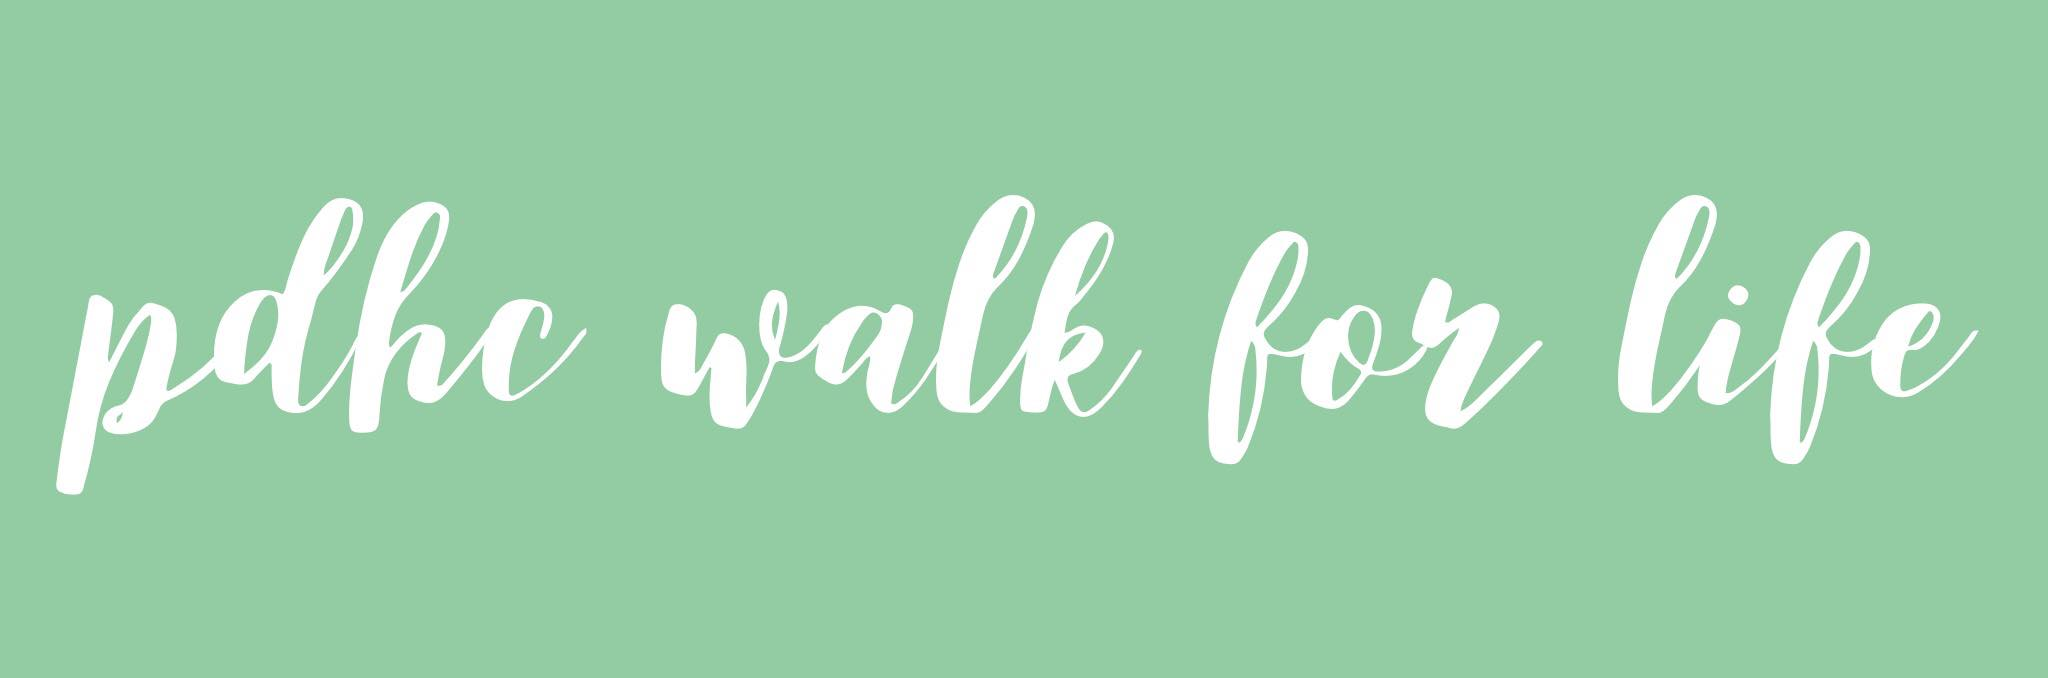 PDHC WALK FOR LIFE 2018